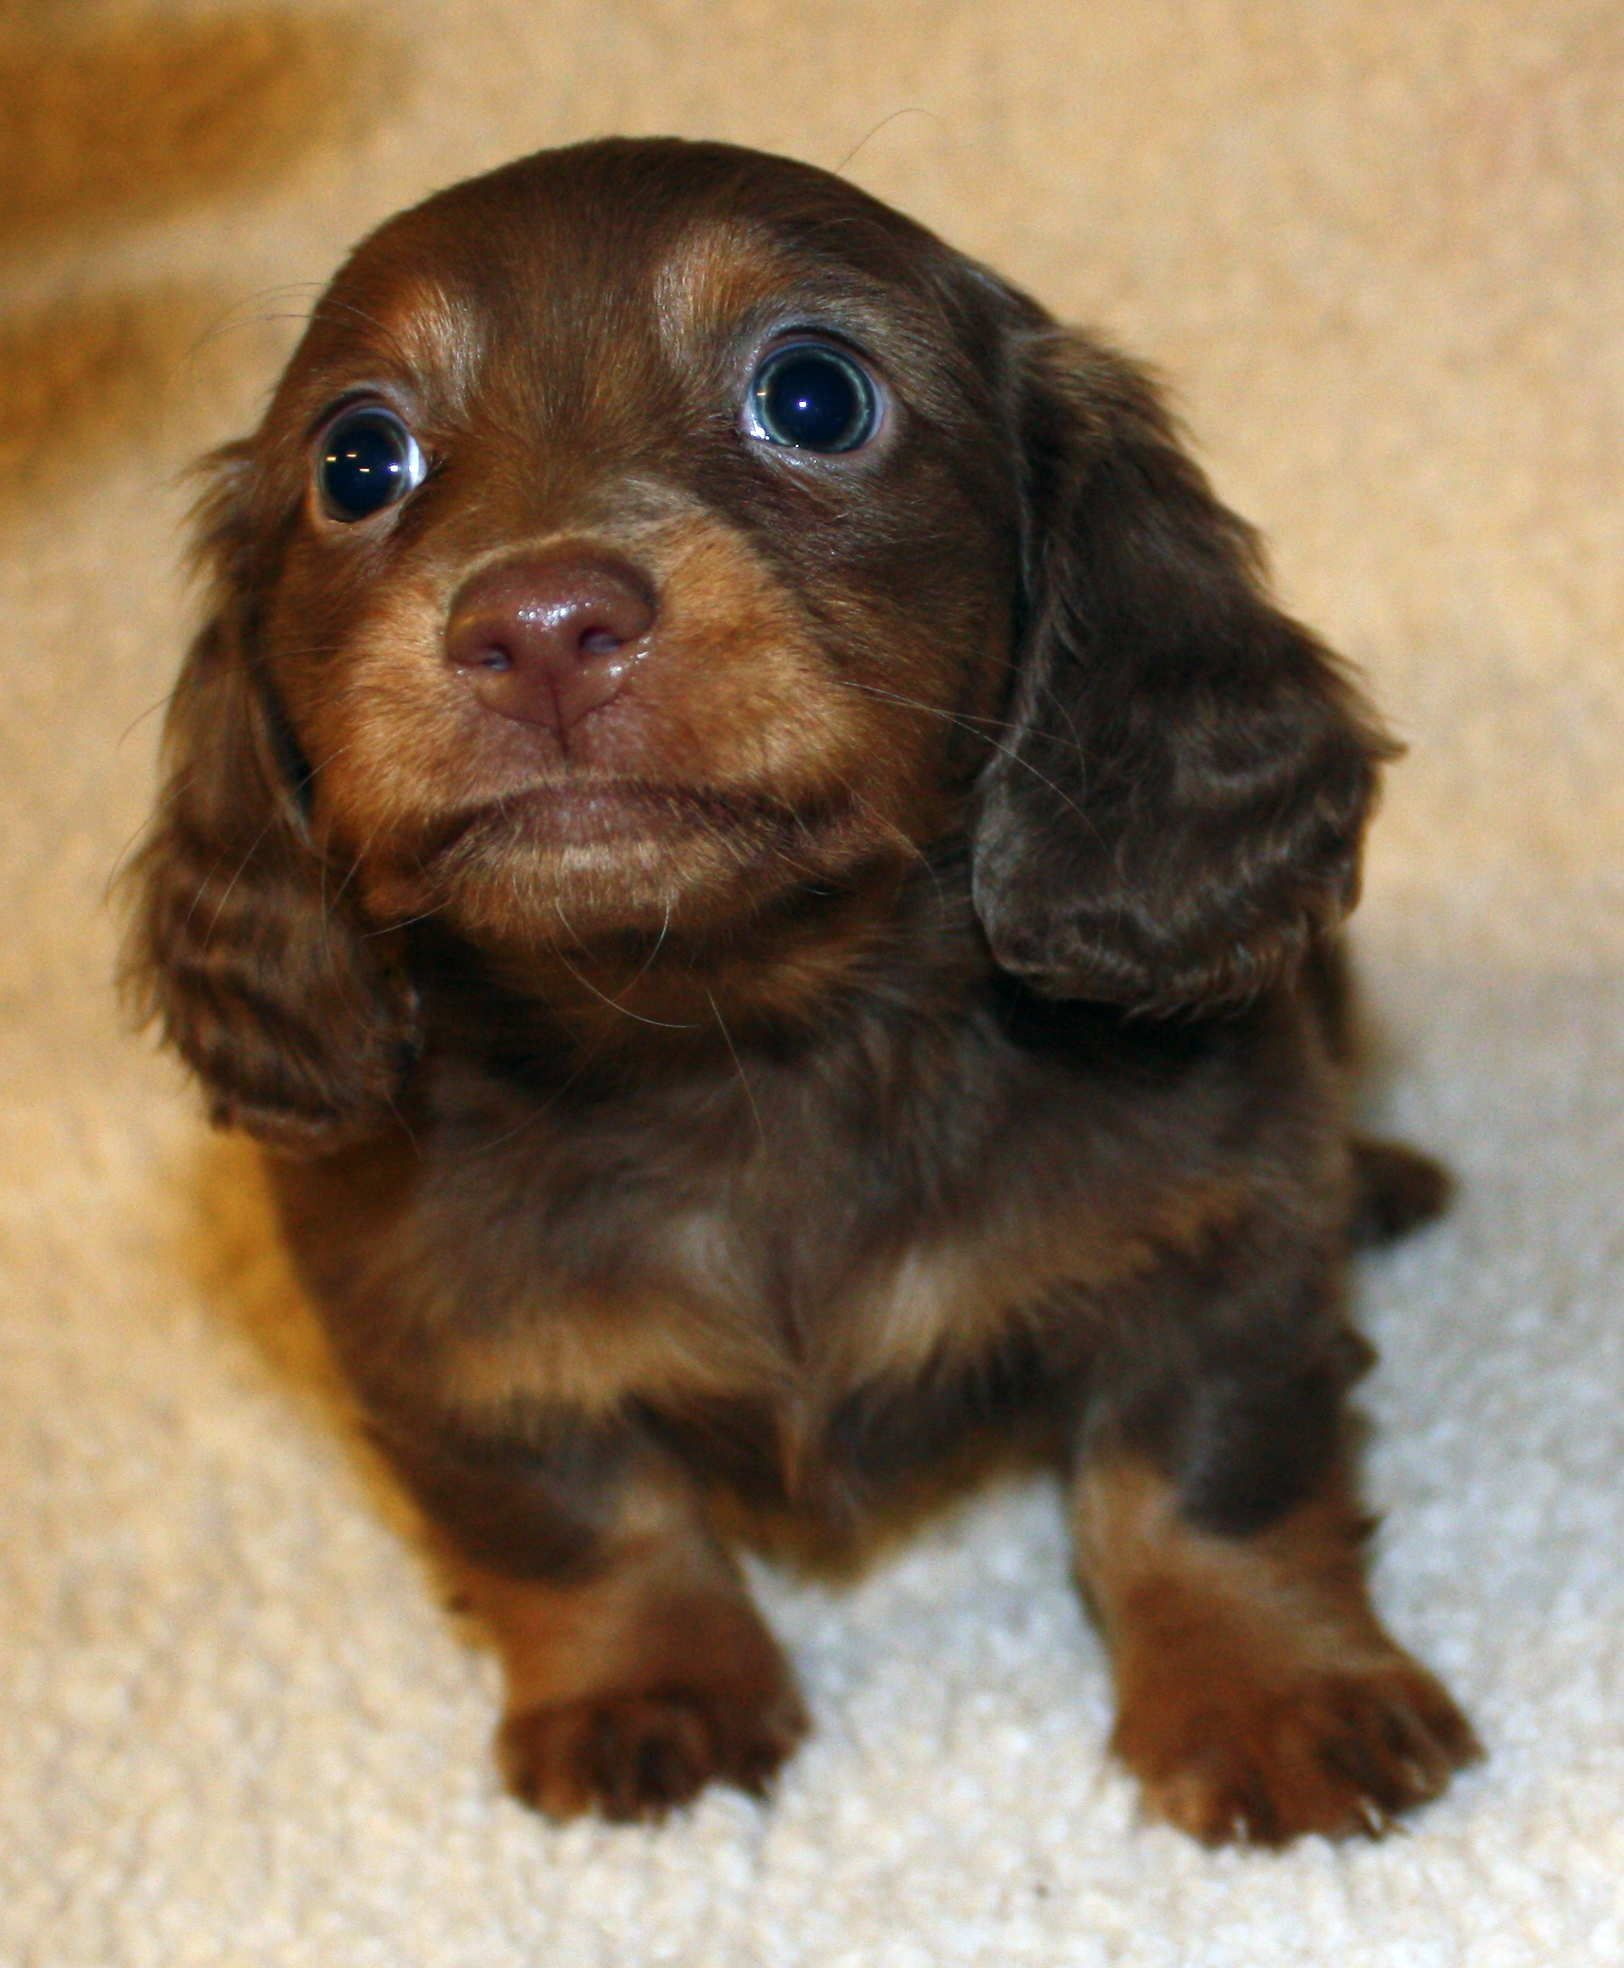 Dogs Caring For Your Dog Tips And Tricks Want To Know More Click On The Image Dogs Dachshund Puppy Miniature Dachshund Puppies Puppies